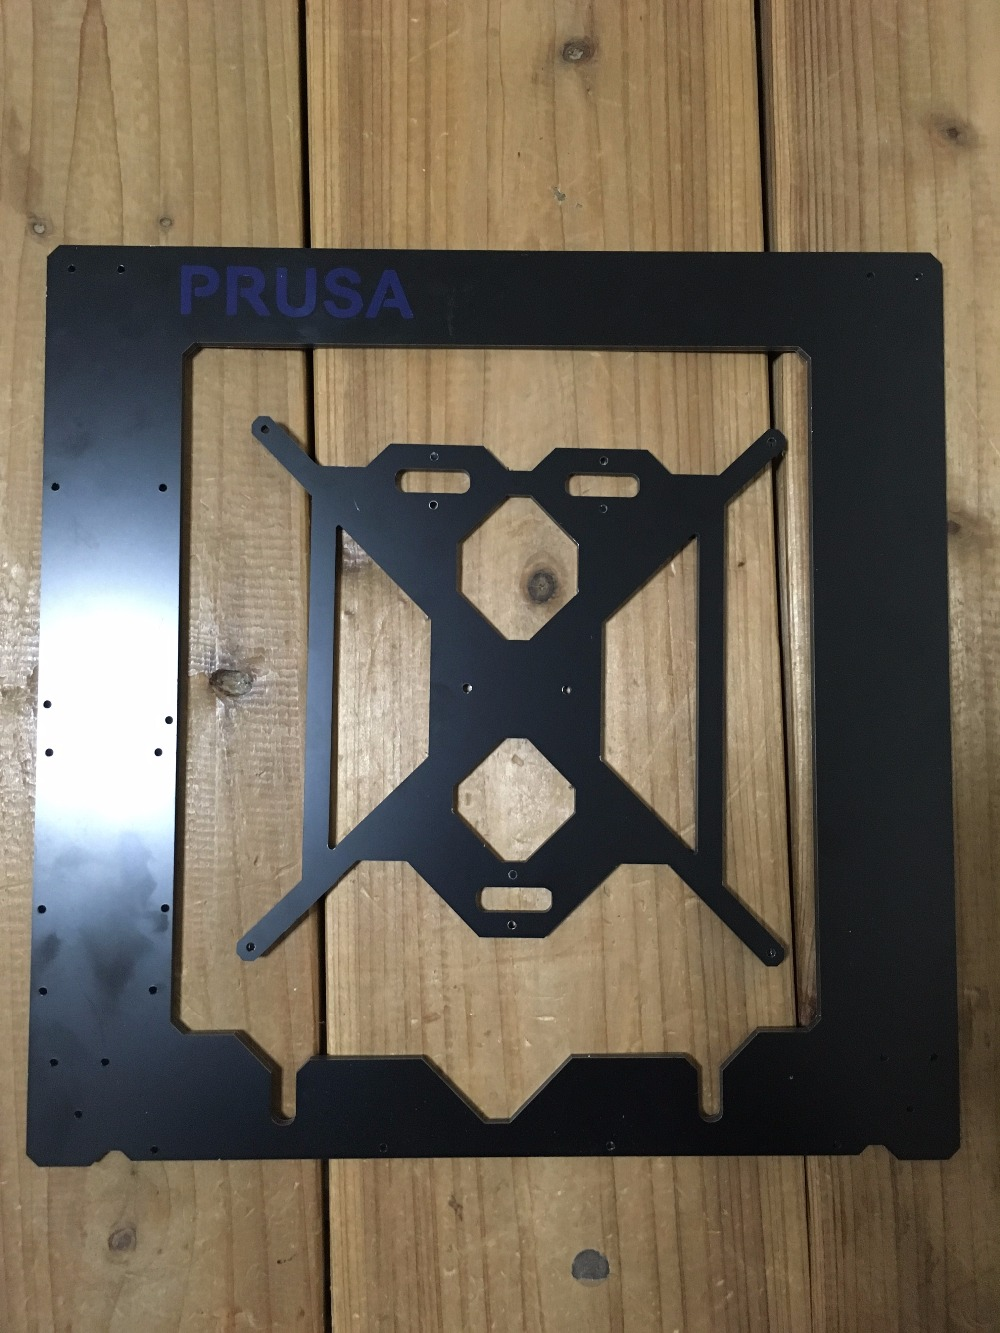 Prusa i3 Rework 3D printer aluminum composite frame kit RepRap Prusa i3 black color composite plate frame 3D Printer DIY 6 mm ultimaker 2 extended assemble frame plate for diy 3d printer aluminum composite plate 6mm thickness case housing 350 390 340